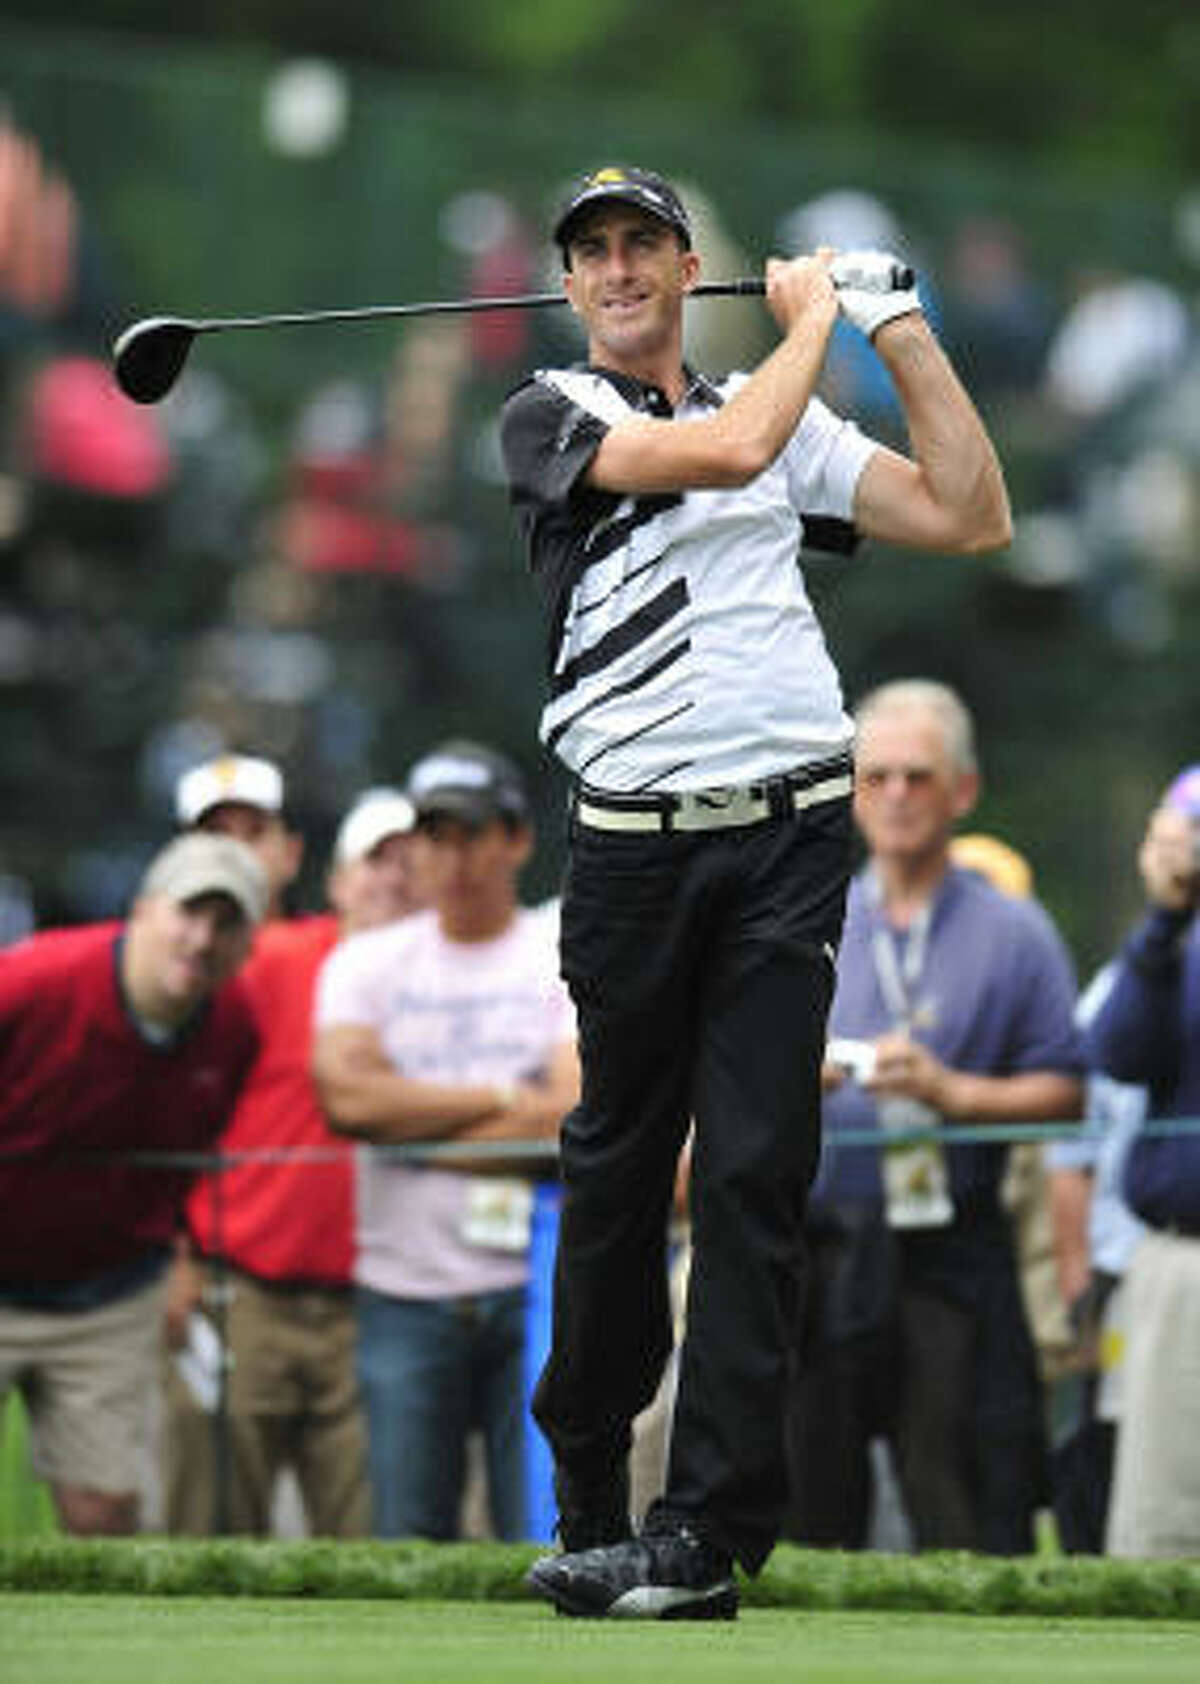 Geoff Ogilvy tees off during a practice round for the U.S. Open at Bethpage Black in Farmingdale, New York.